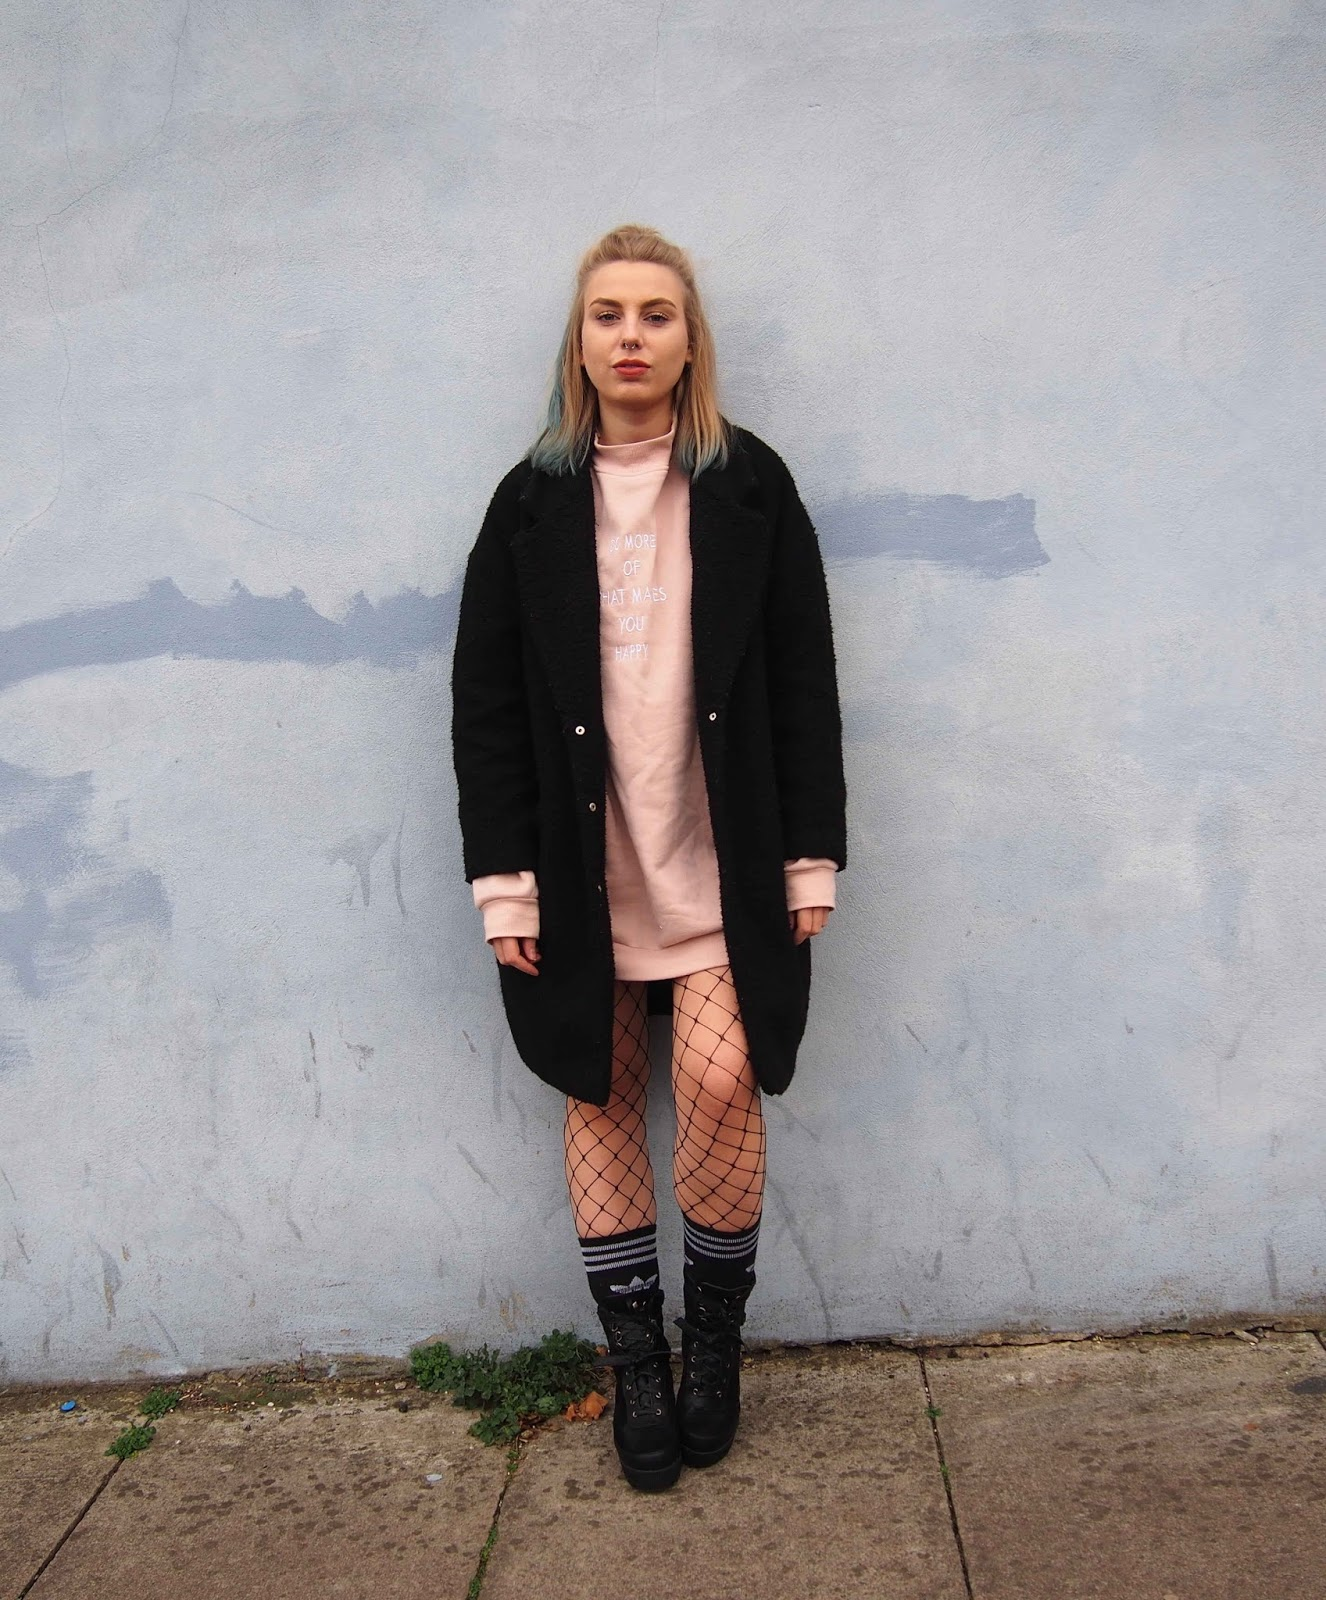 oversized duster jacket coat, oversized pink jumper dress primark, fishnet tights, adidas sock, chunky biker boots, autumn winter outfit, grunge 90s alternative style